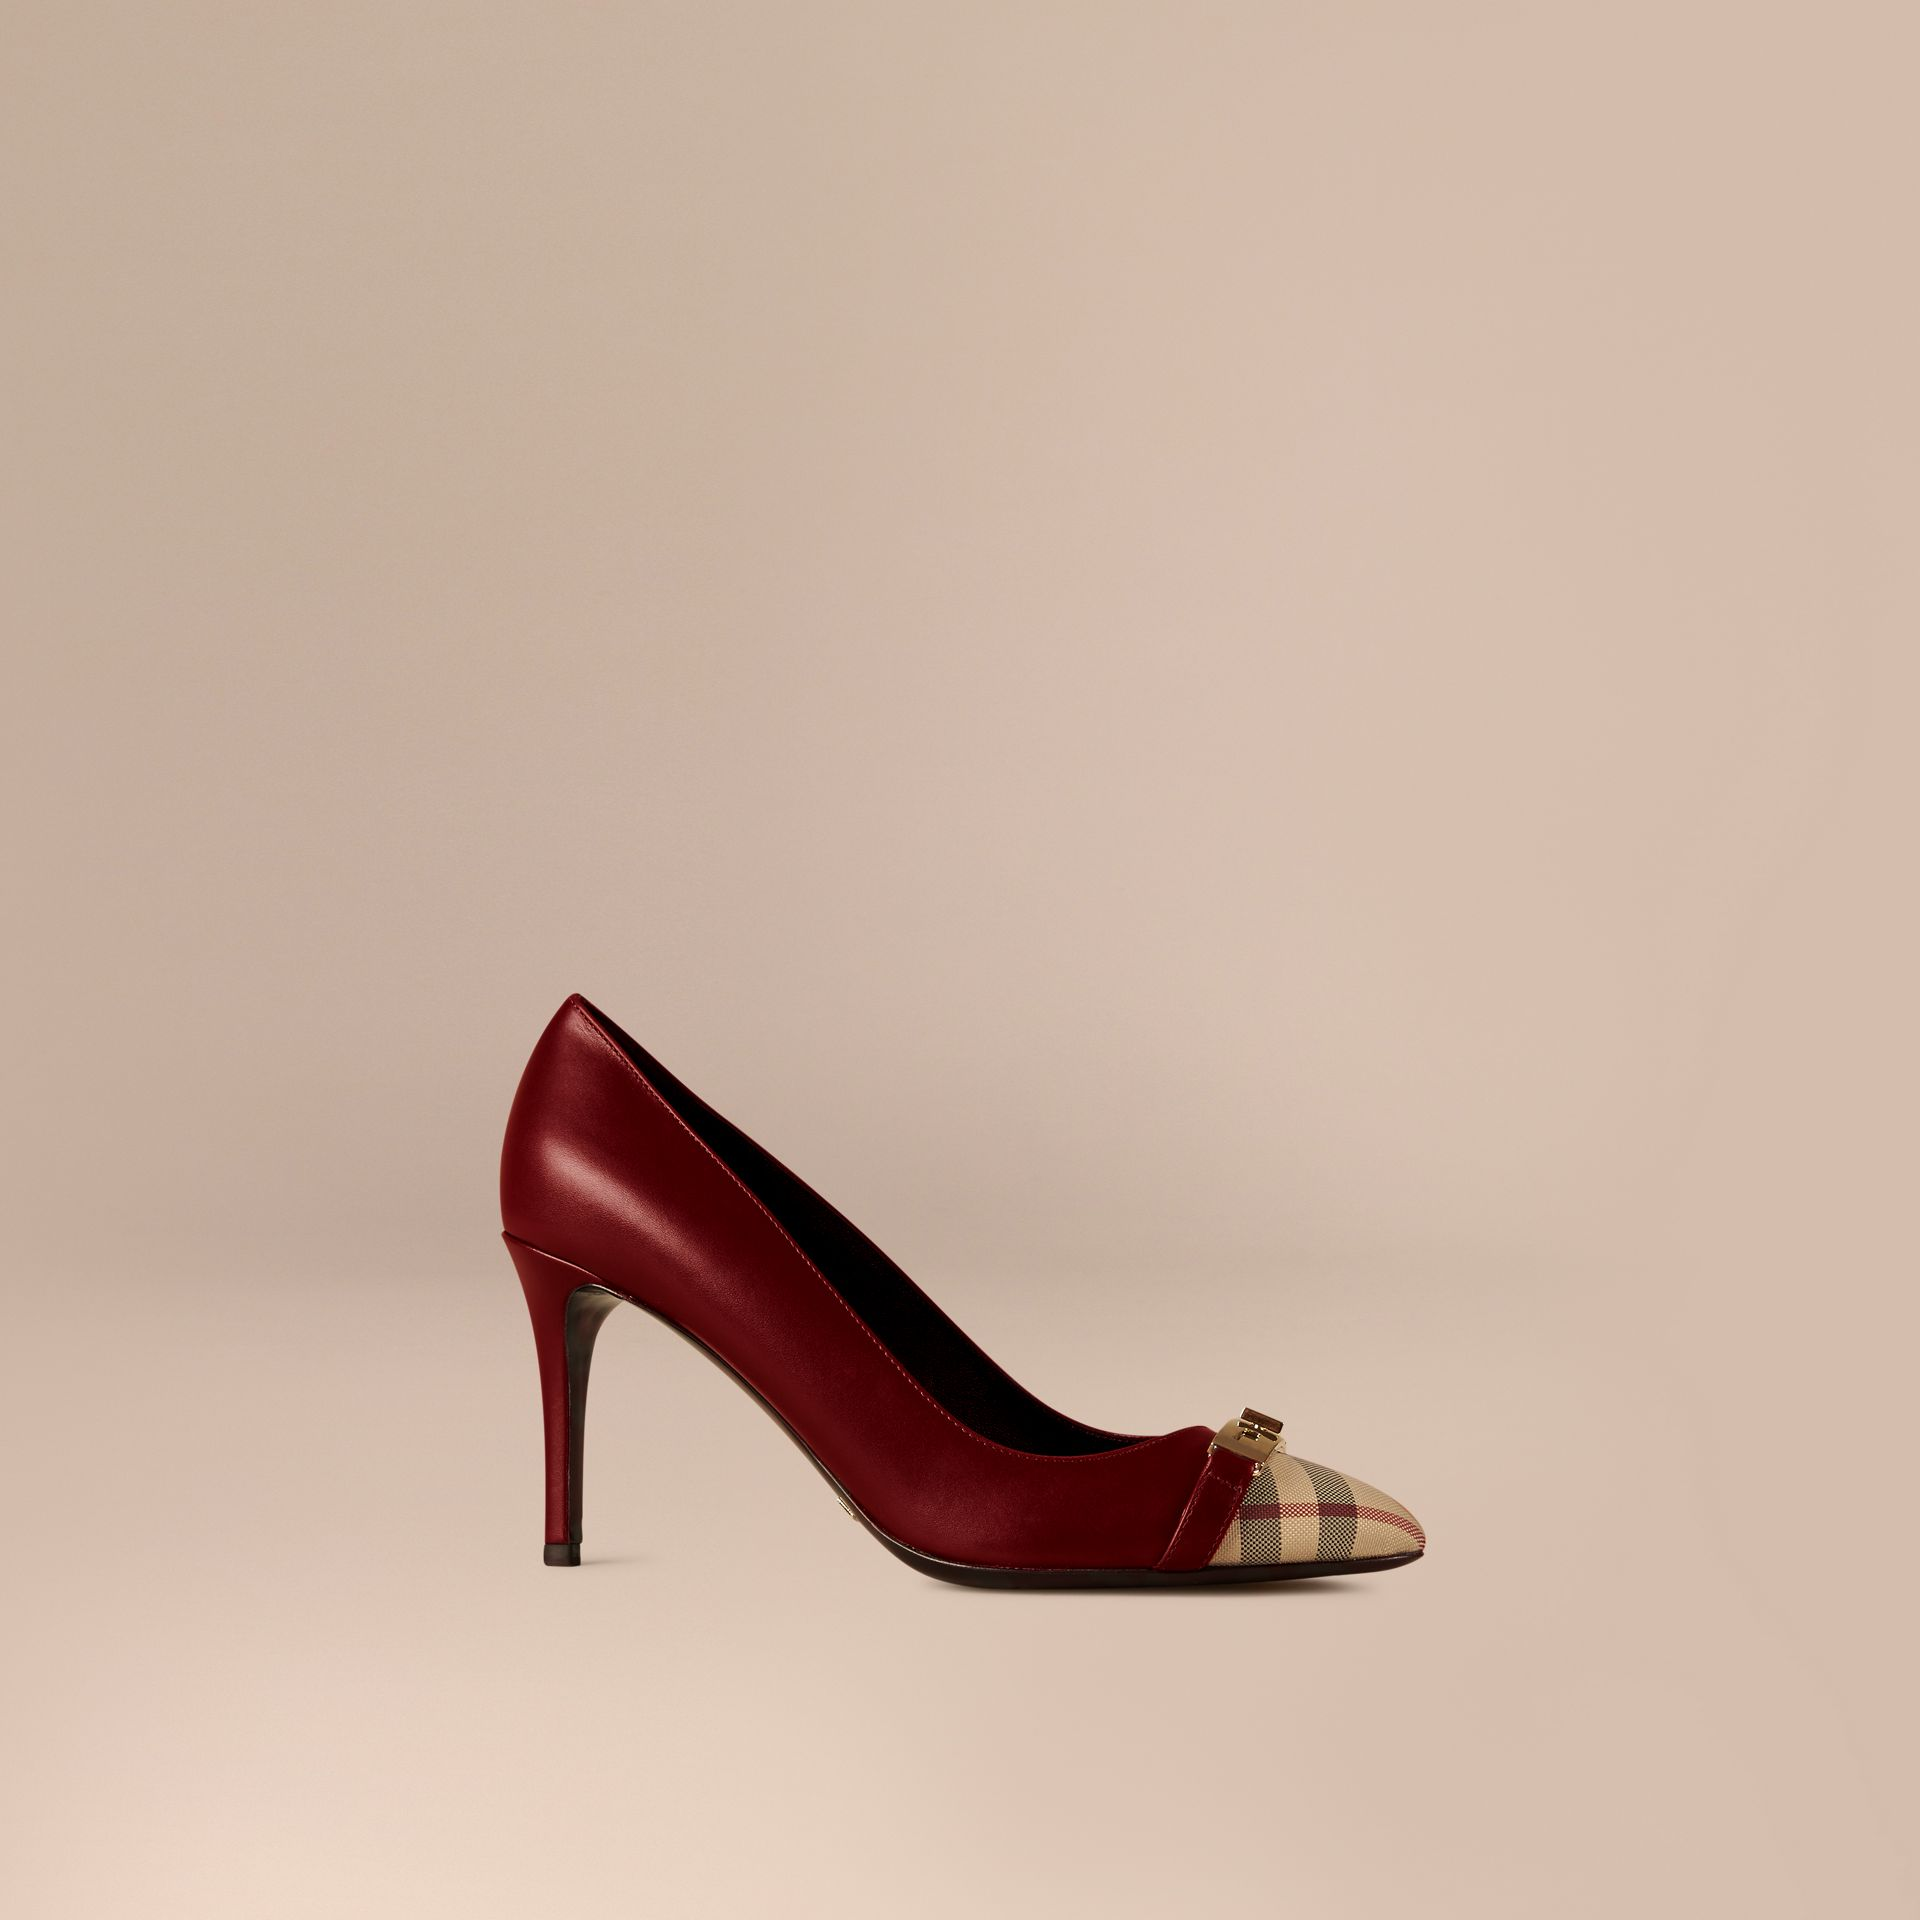 Horseferry Check Leather Pumps Oxblood - gallery image 1